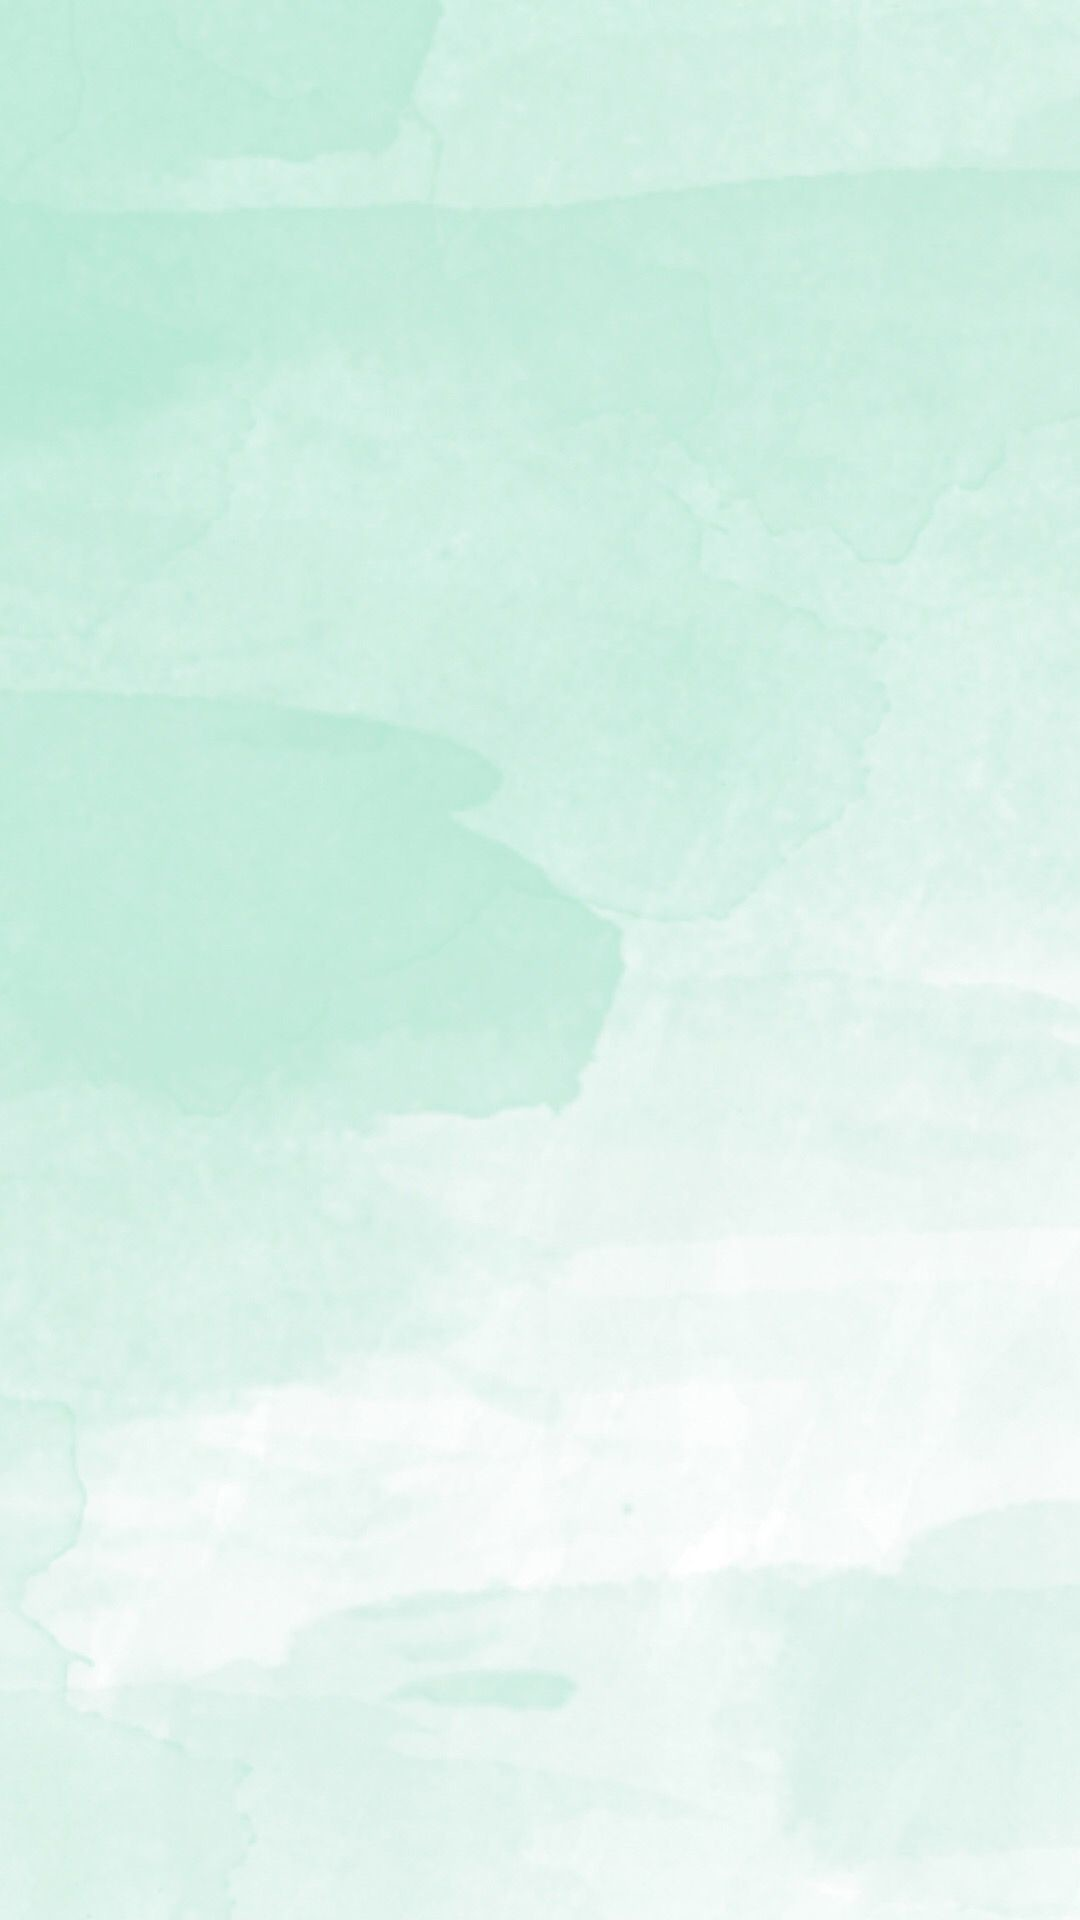 1242x2208 sg51-hip-green-blueish-mint-like-gradation-blur